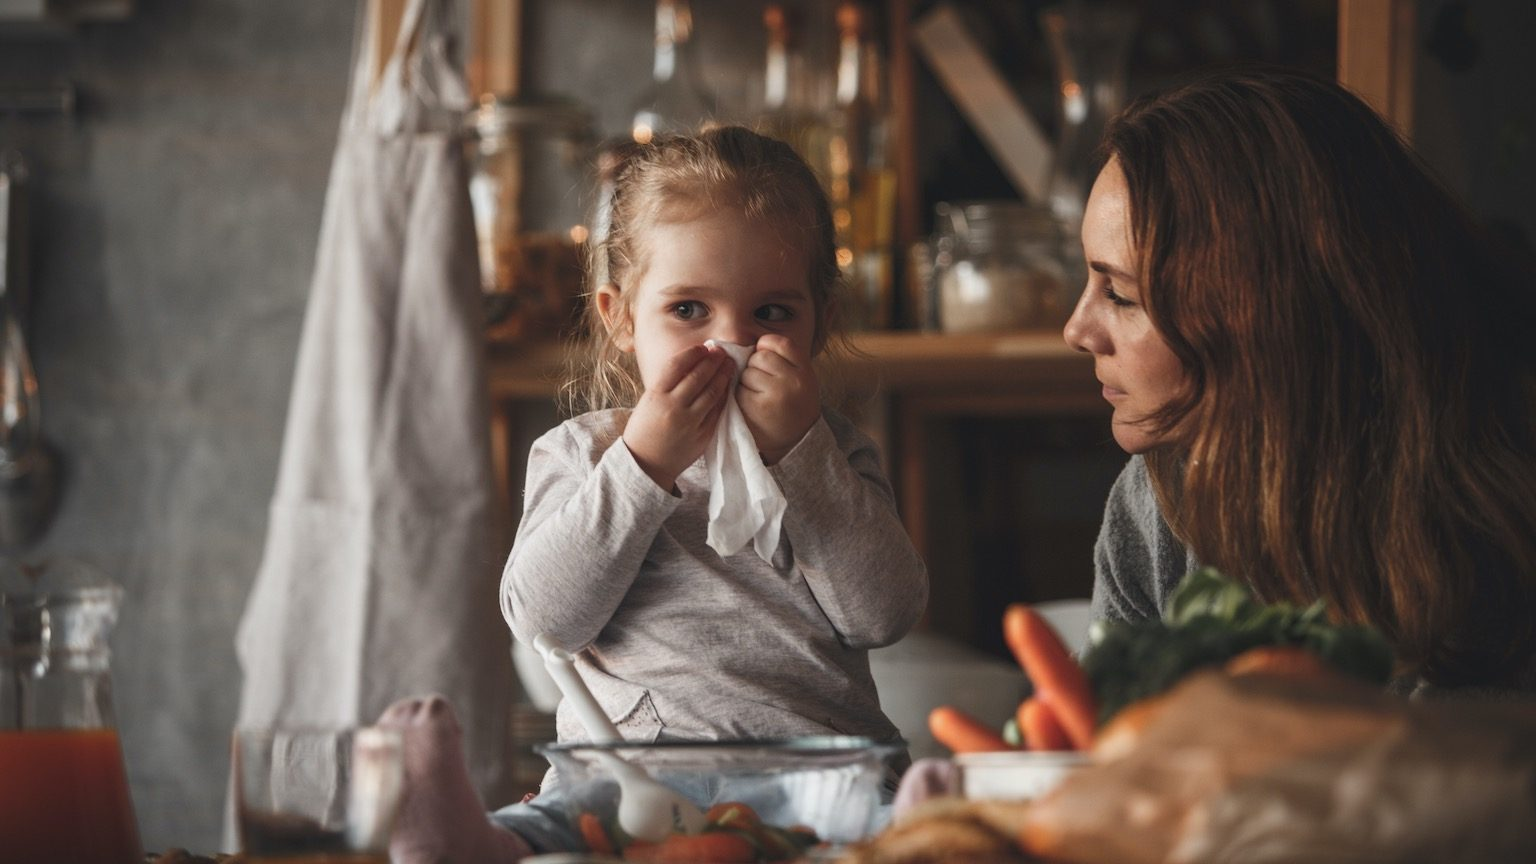 Two year old baby girl wipes her nose with a handkerchief while sitting on the kitchen counter. She is helping her mother preparing vegetables salad.